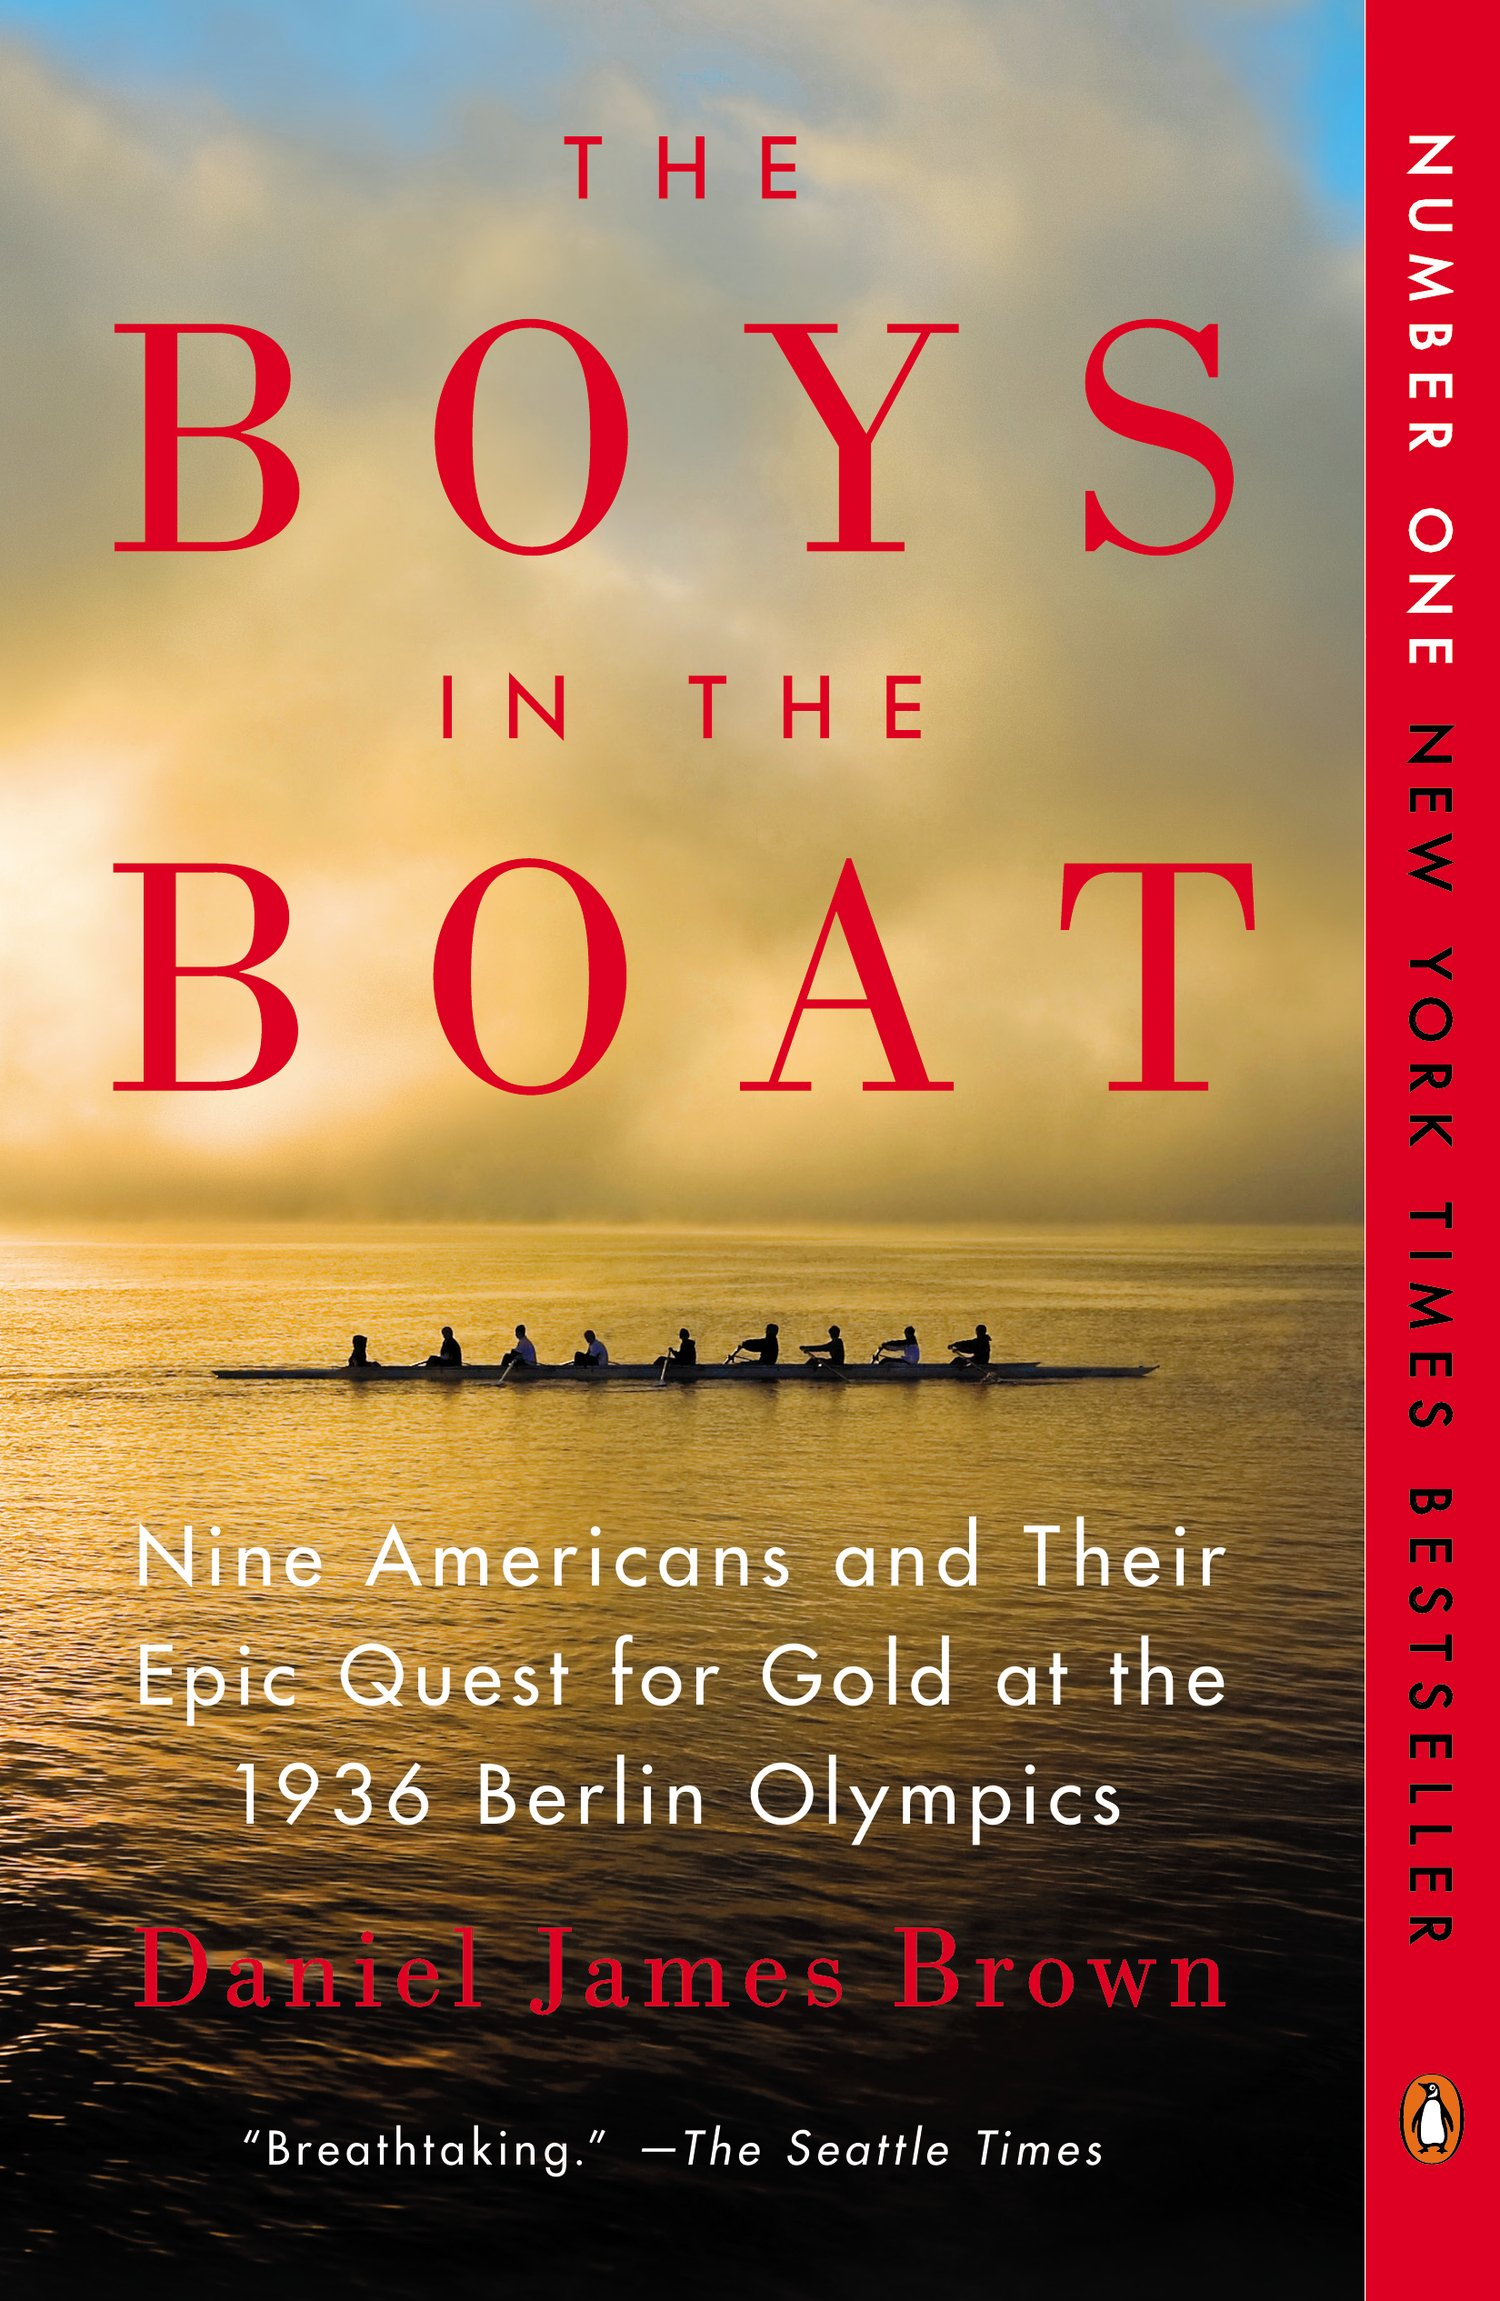 The Boys in the Boat: Nine Americans and Their Epic Quest for Gold at the 1936 Berlin Olympics - Daniel James Brown